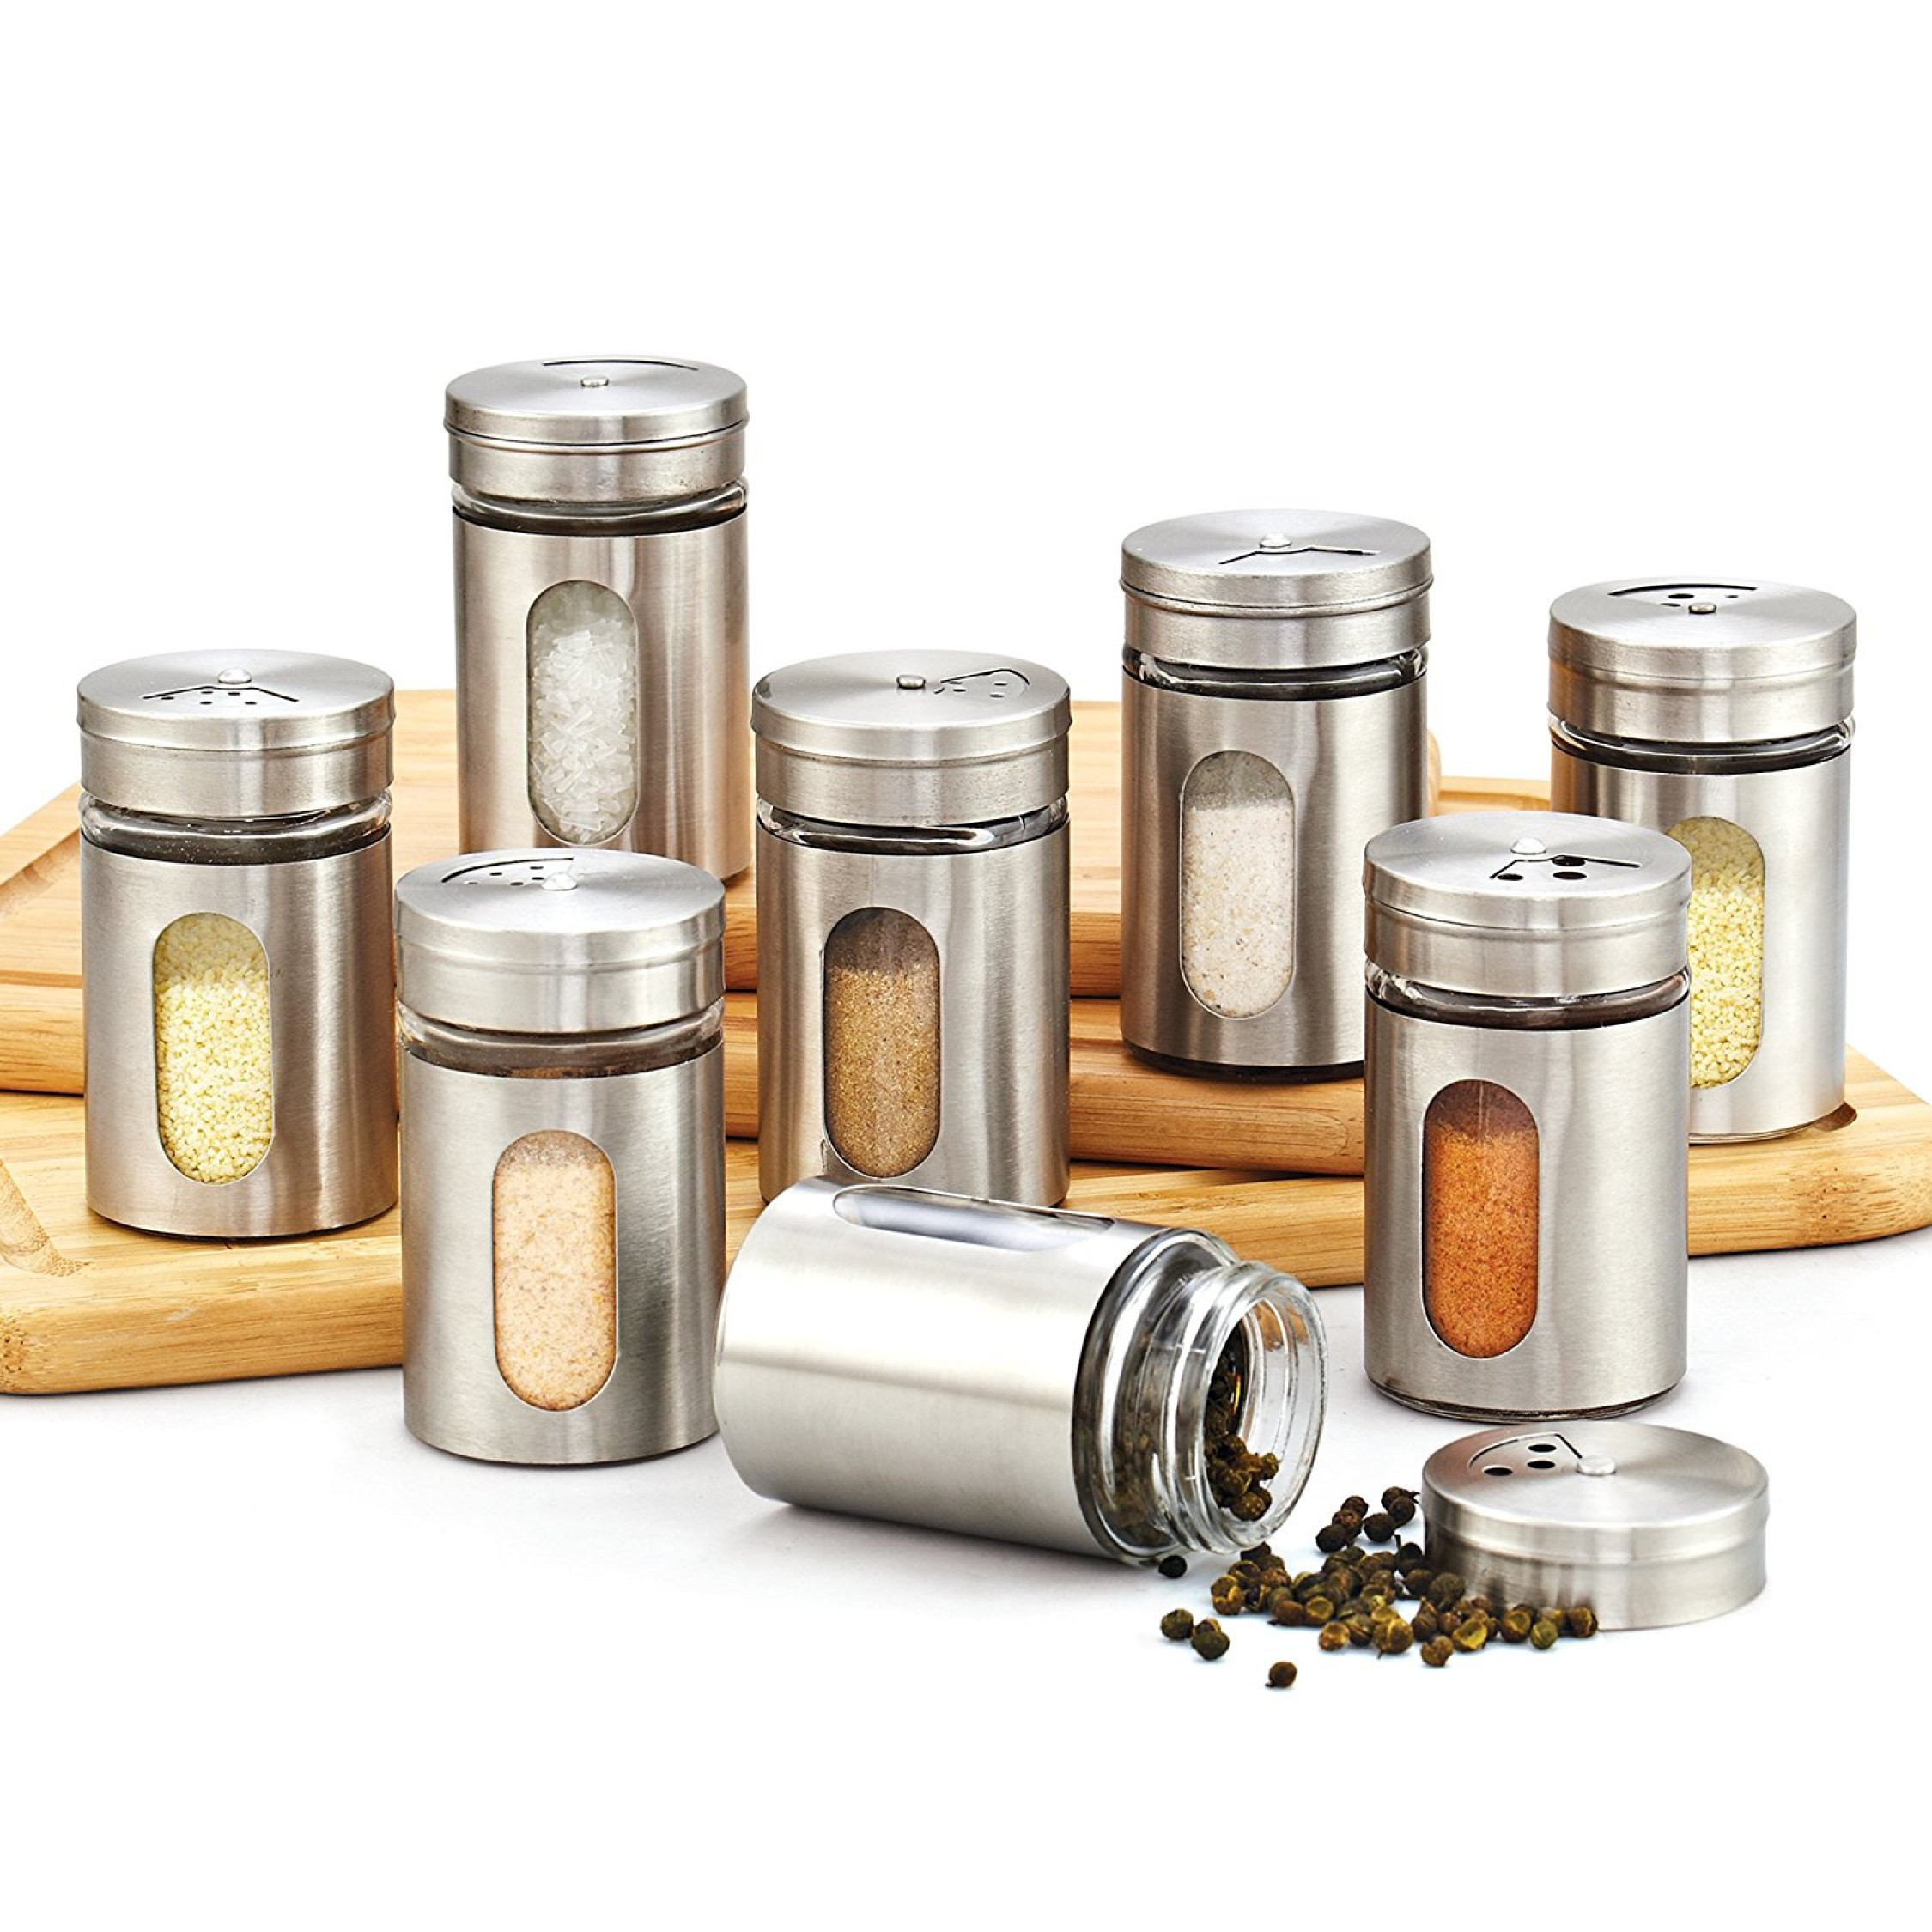 pin canisters white sets french stunning chic flair and decor ideas shabby kitchen country a farmhouse with canister